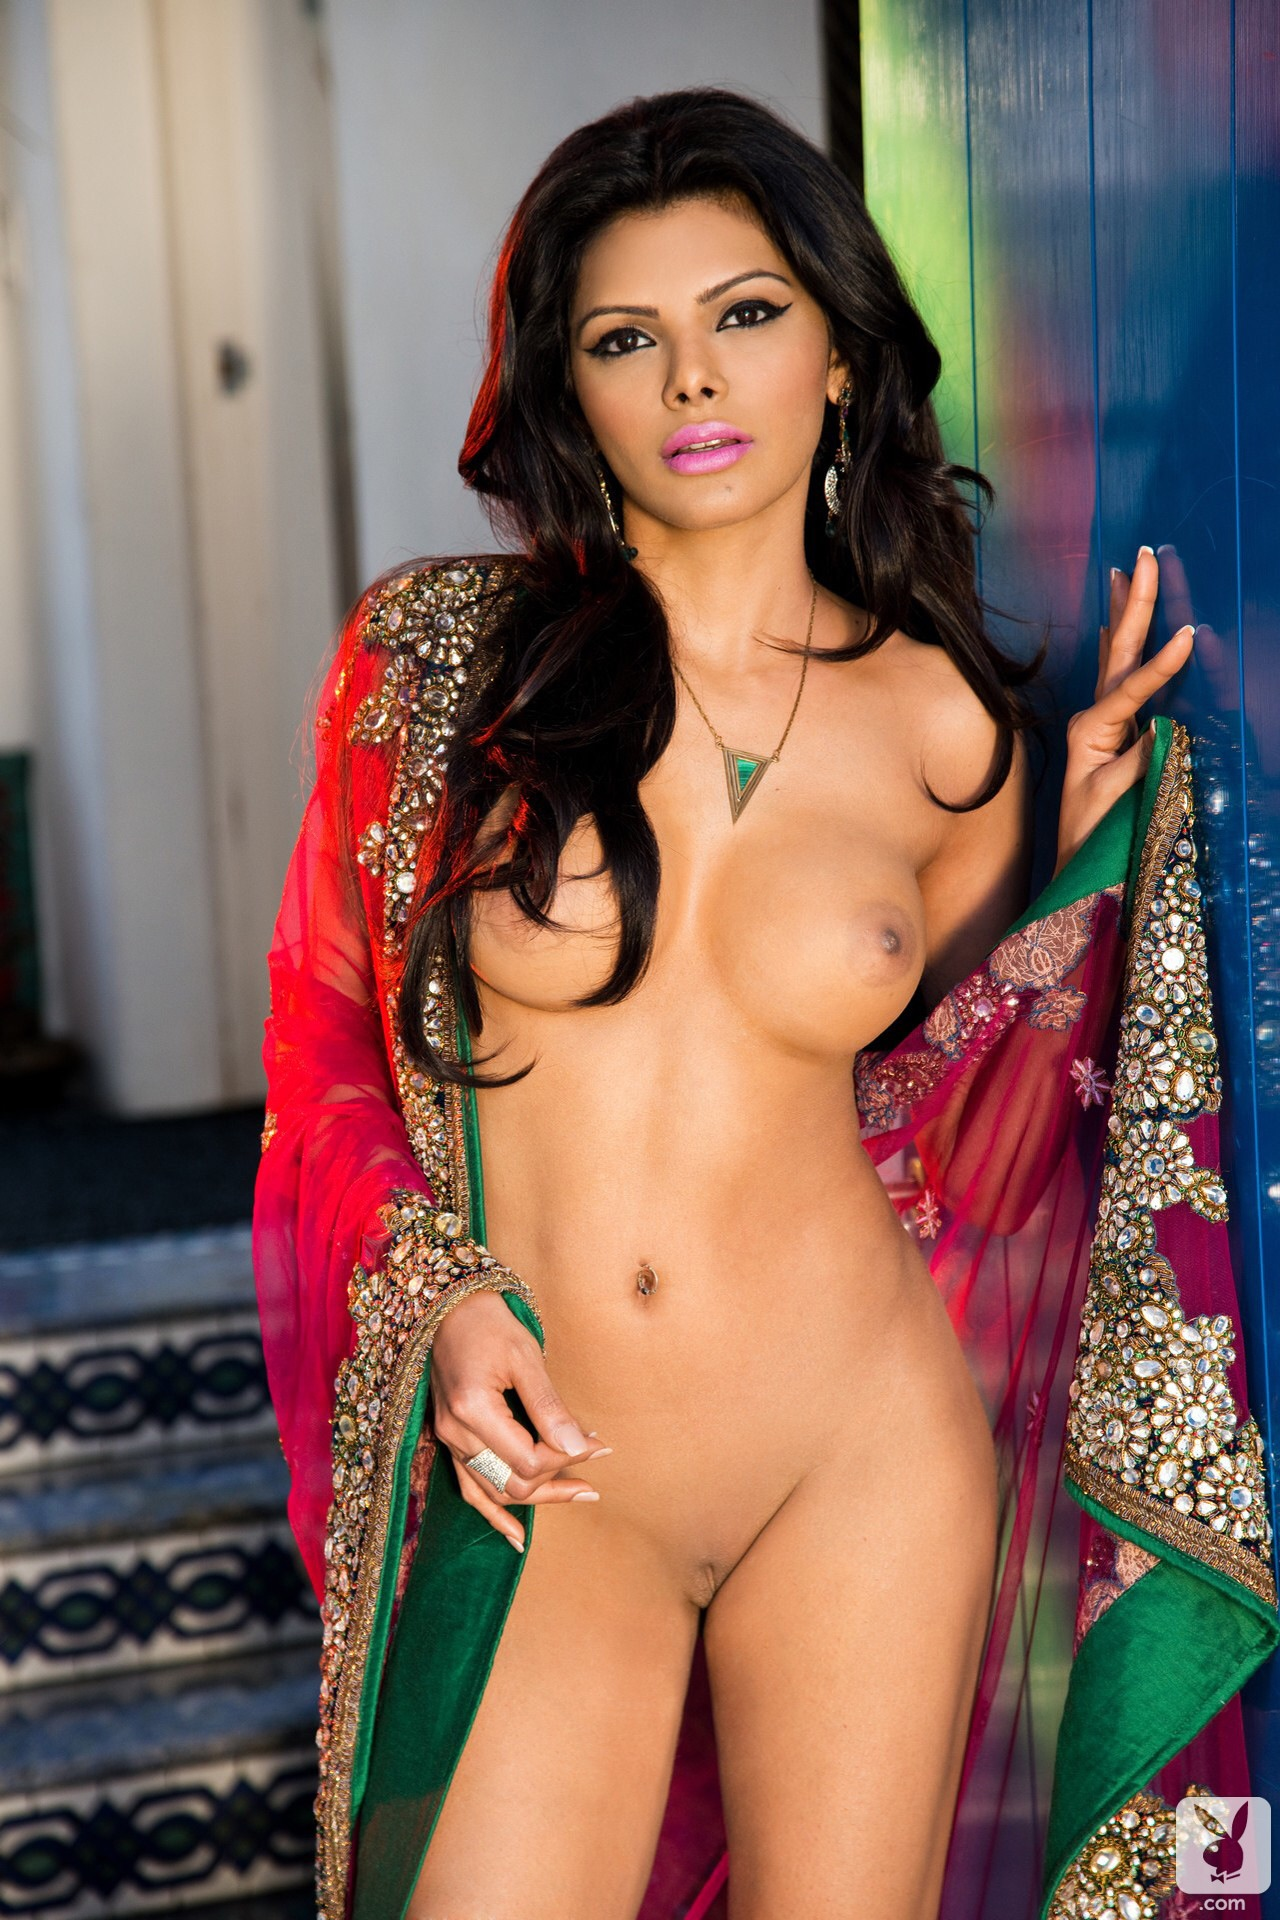 Sherlyn Chopra Playboy Full Set  Ashjokess Blog-4052